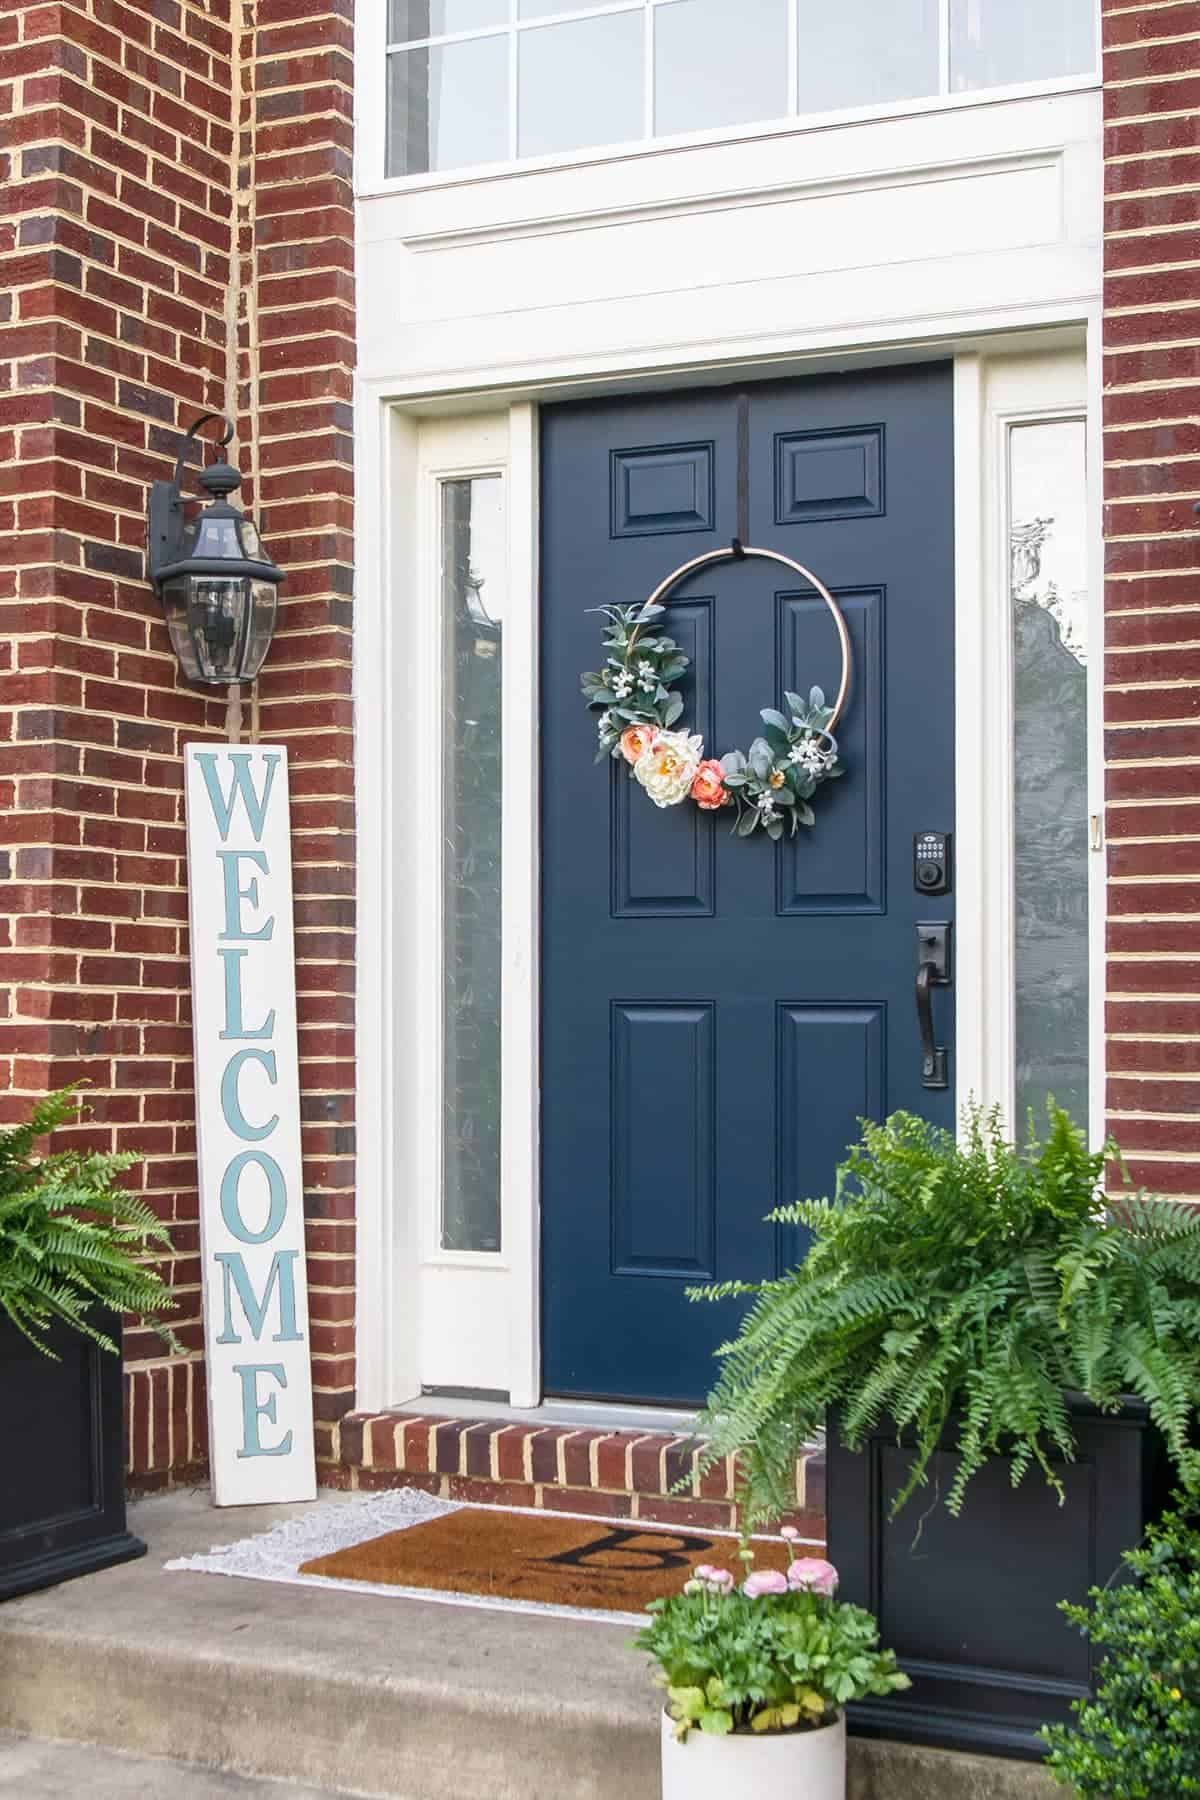 Outdoor Front Door Decorating for brick house including DIY welcome sign.